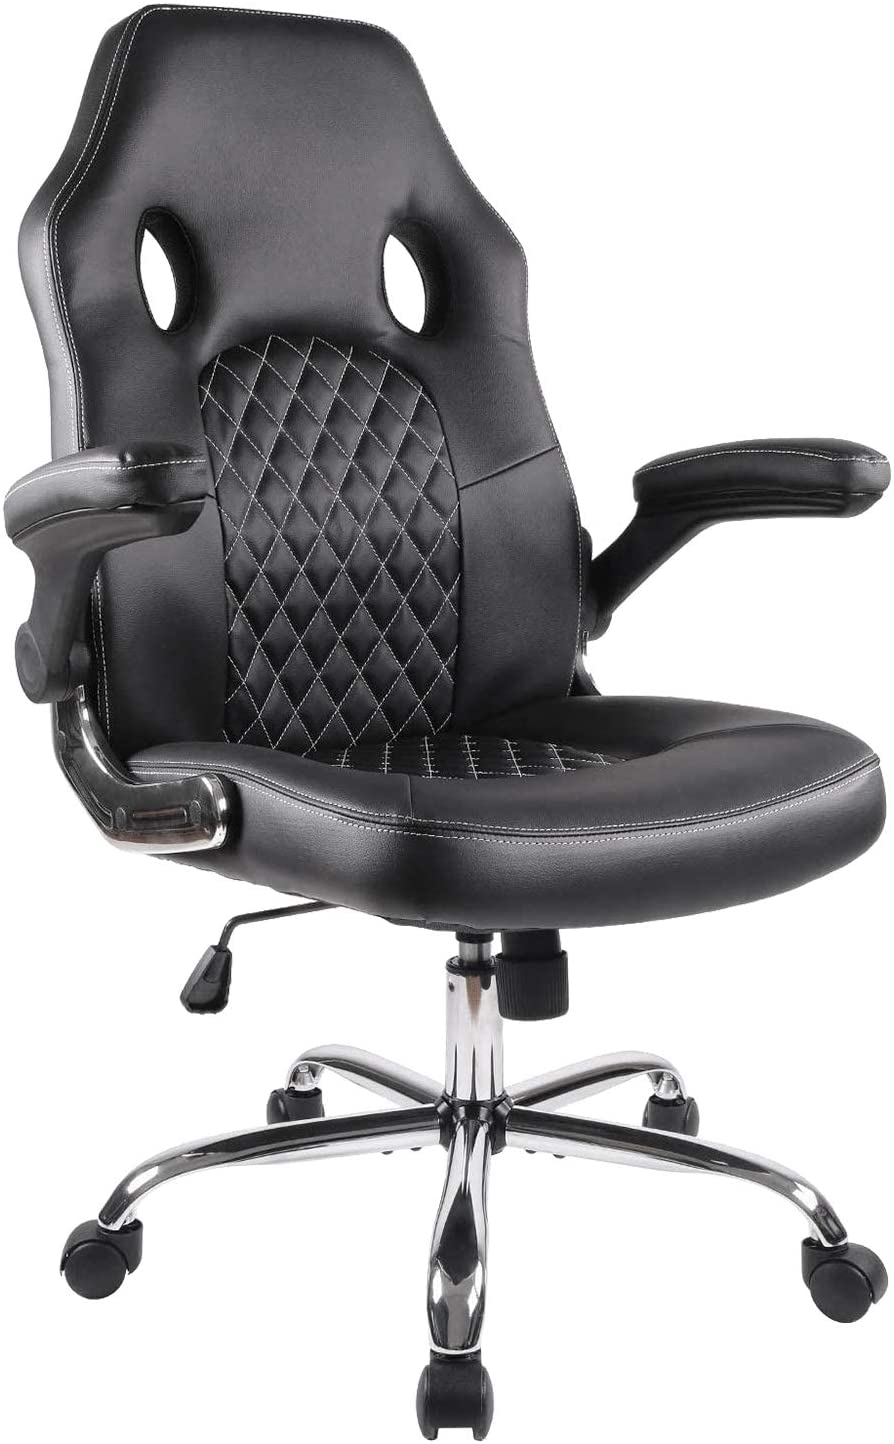 Office Chair, Gaming Chair Leather, Computer Desk Chair Task Swivel Executive Chairs High Back with Padded Seat Armrests and Rolling Casters (Black)